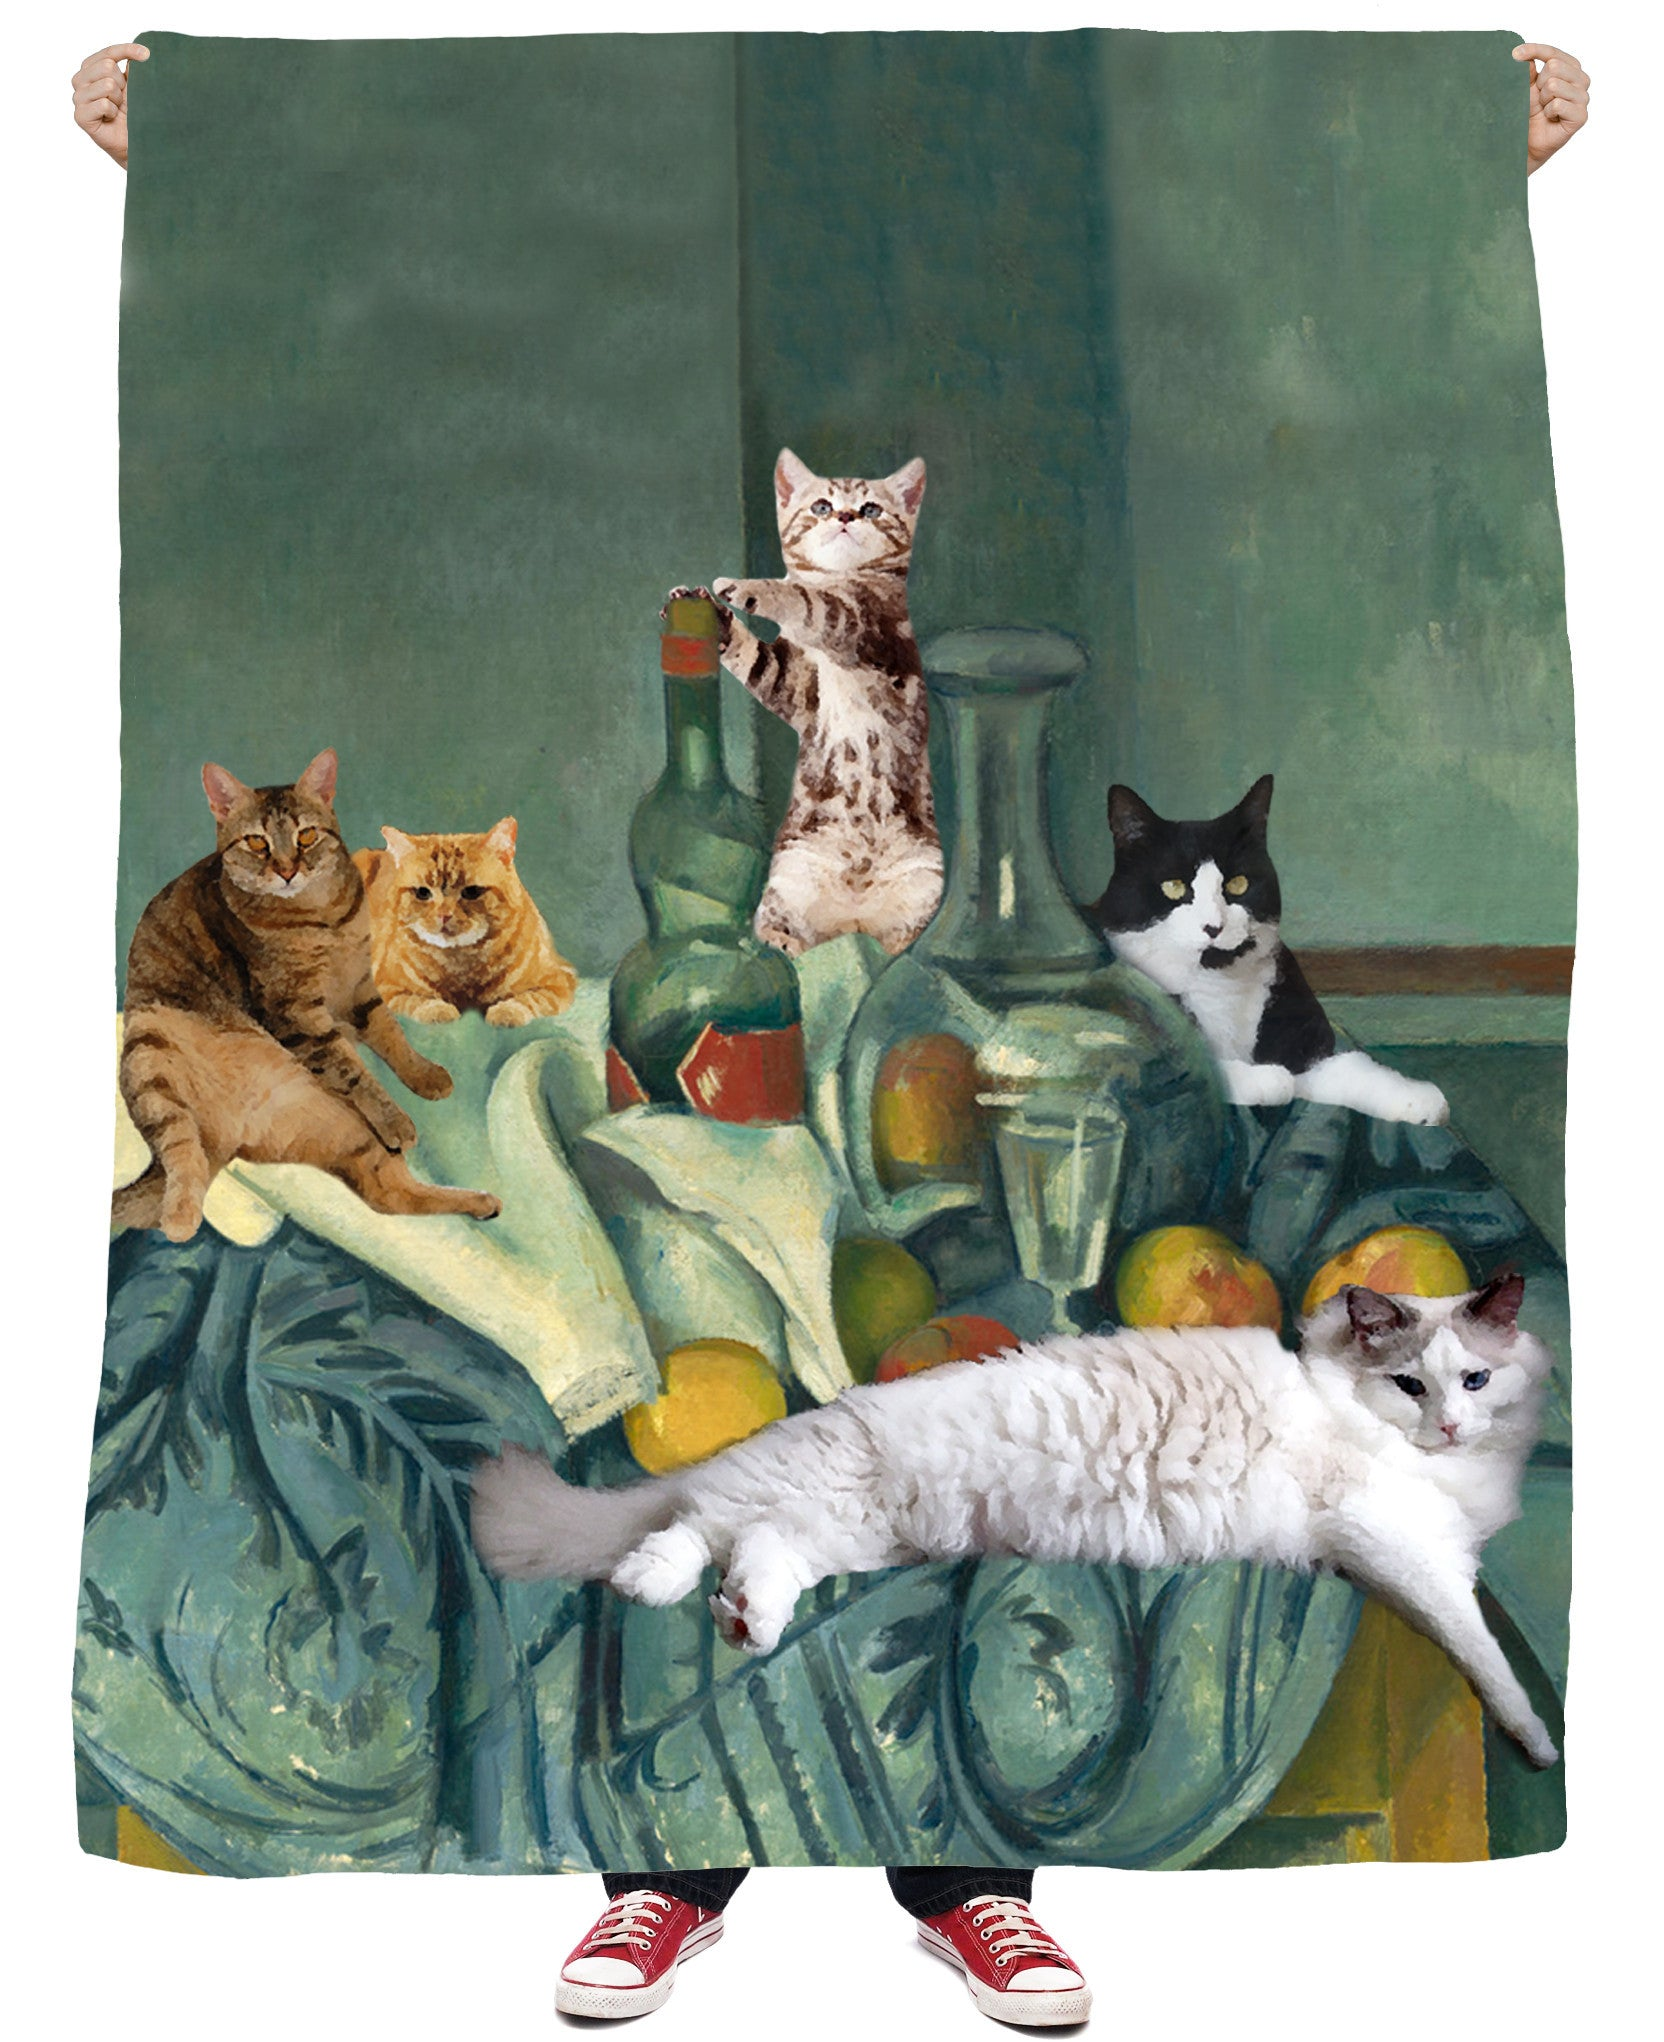 Still Cat Fleece Blanket - Love Kitty Cat